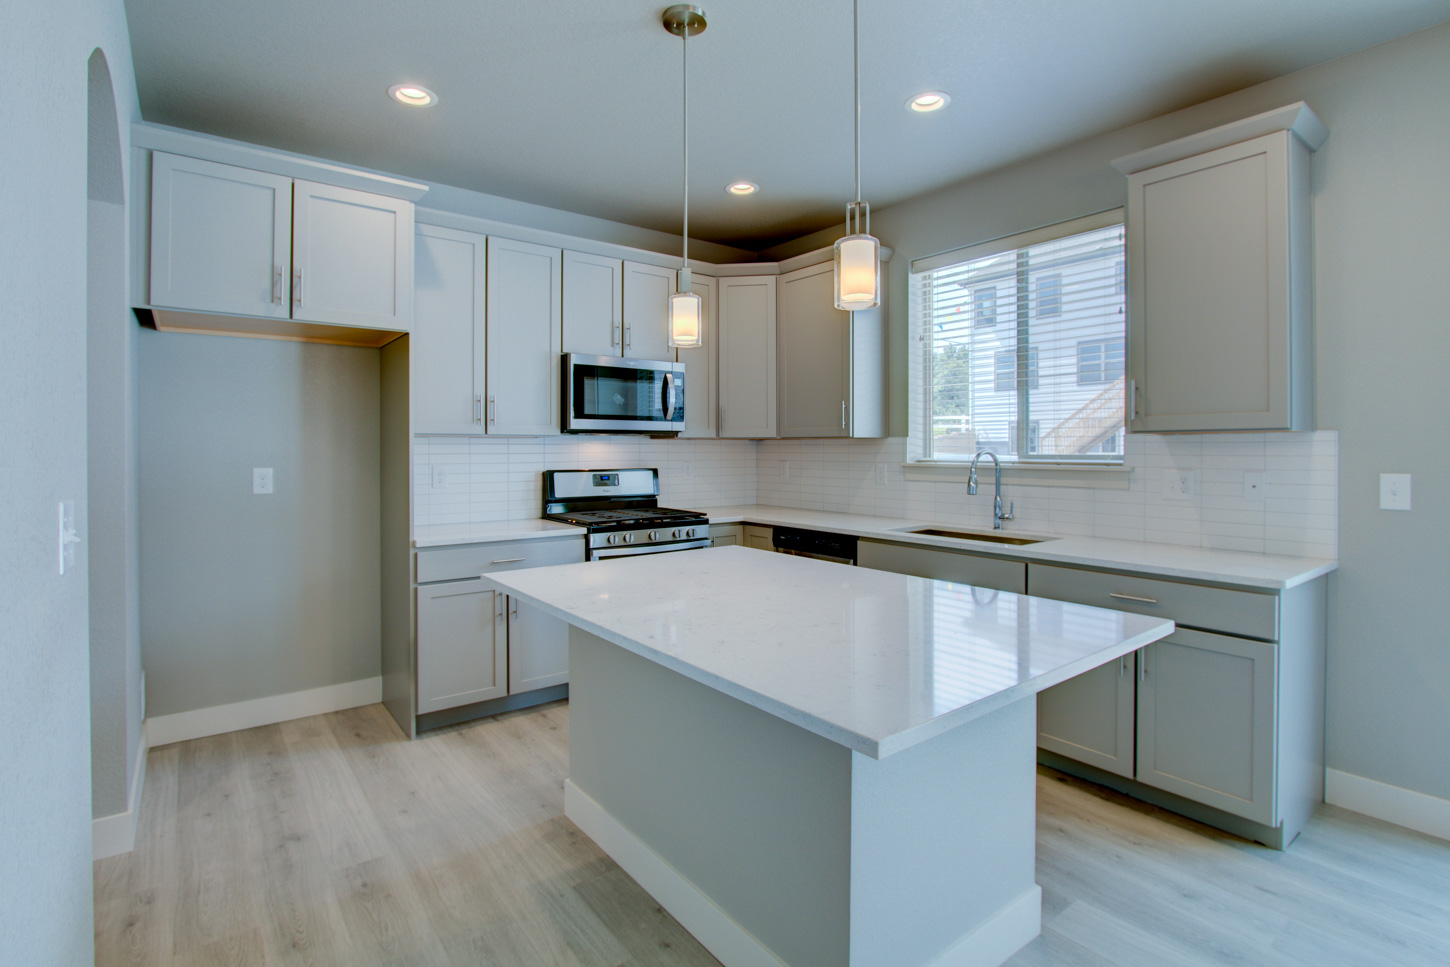 10_115_20anders_20ct_loveland_kitchen_new_20homes_20for_20sale